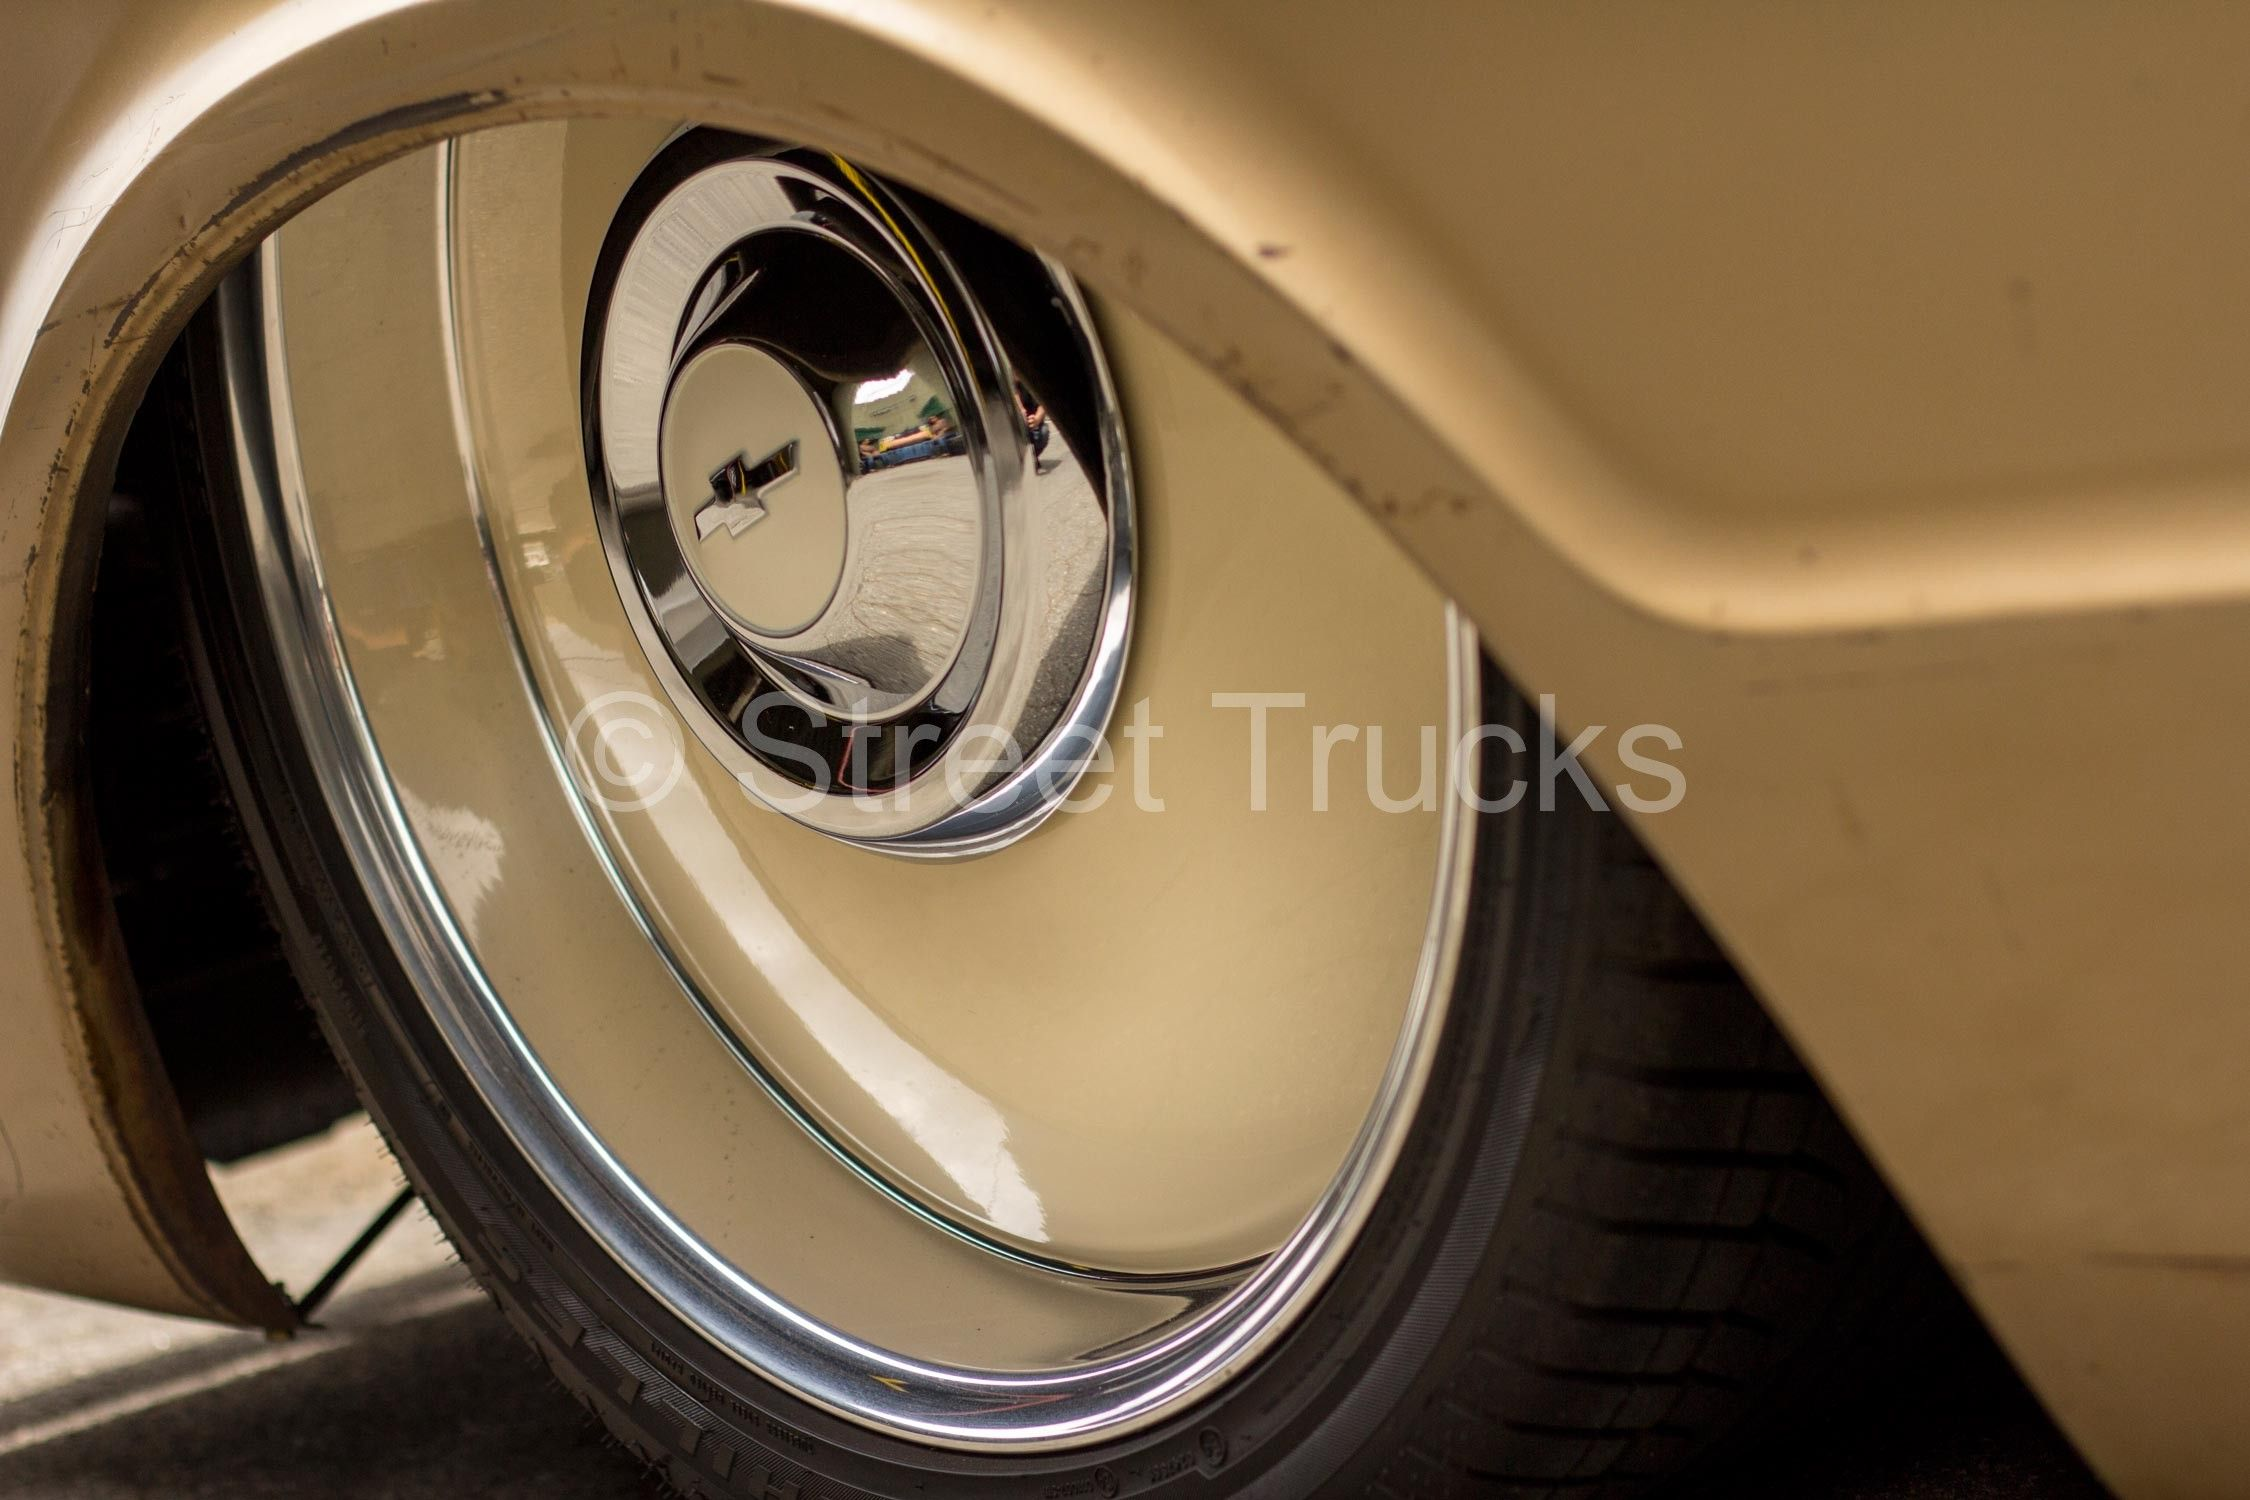 Chevy Truck Center Caps Google Search 57 Chevy Trucks Chevy